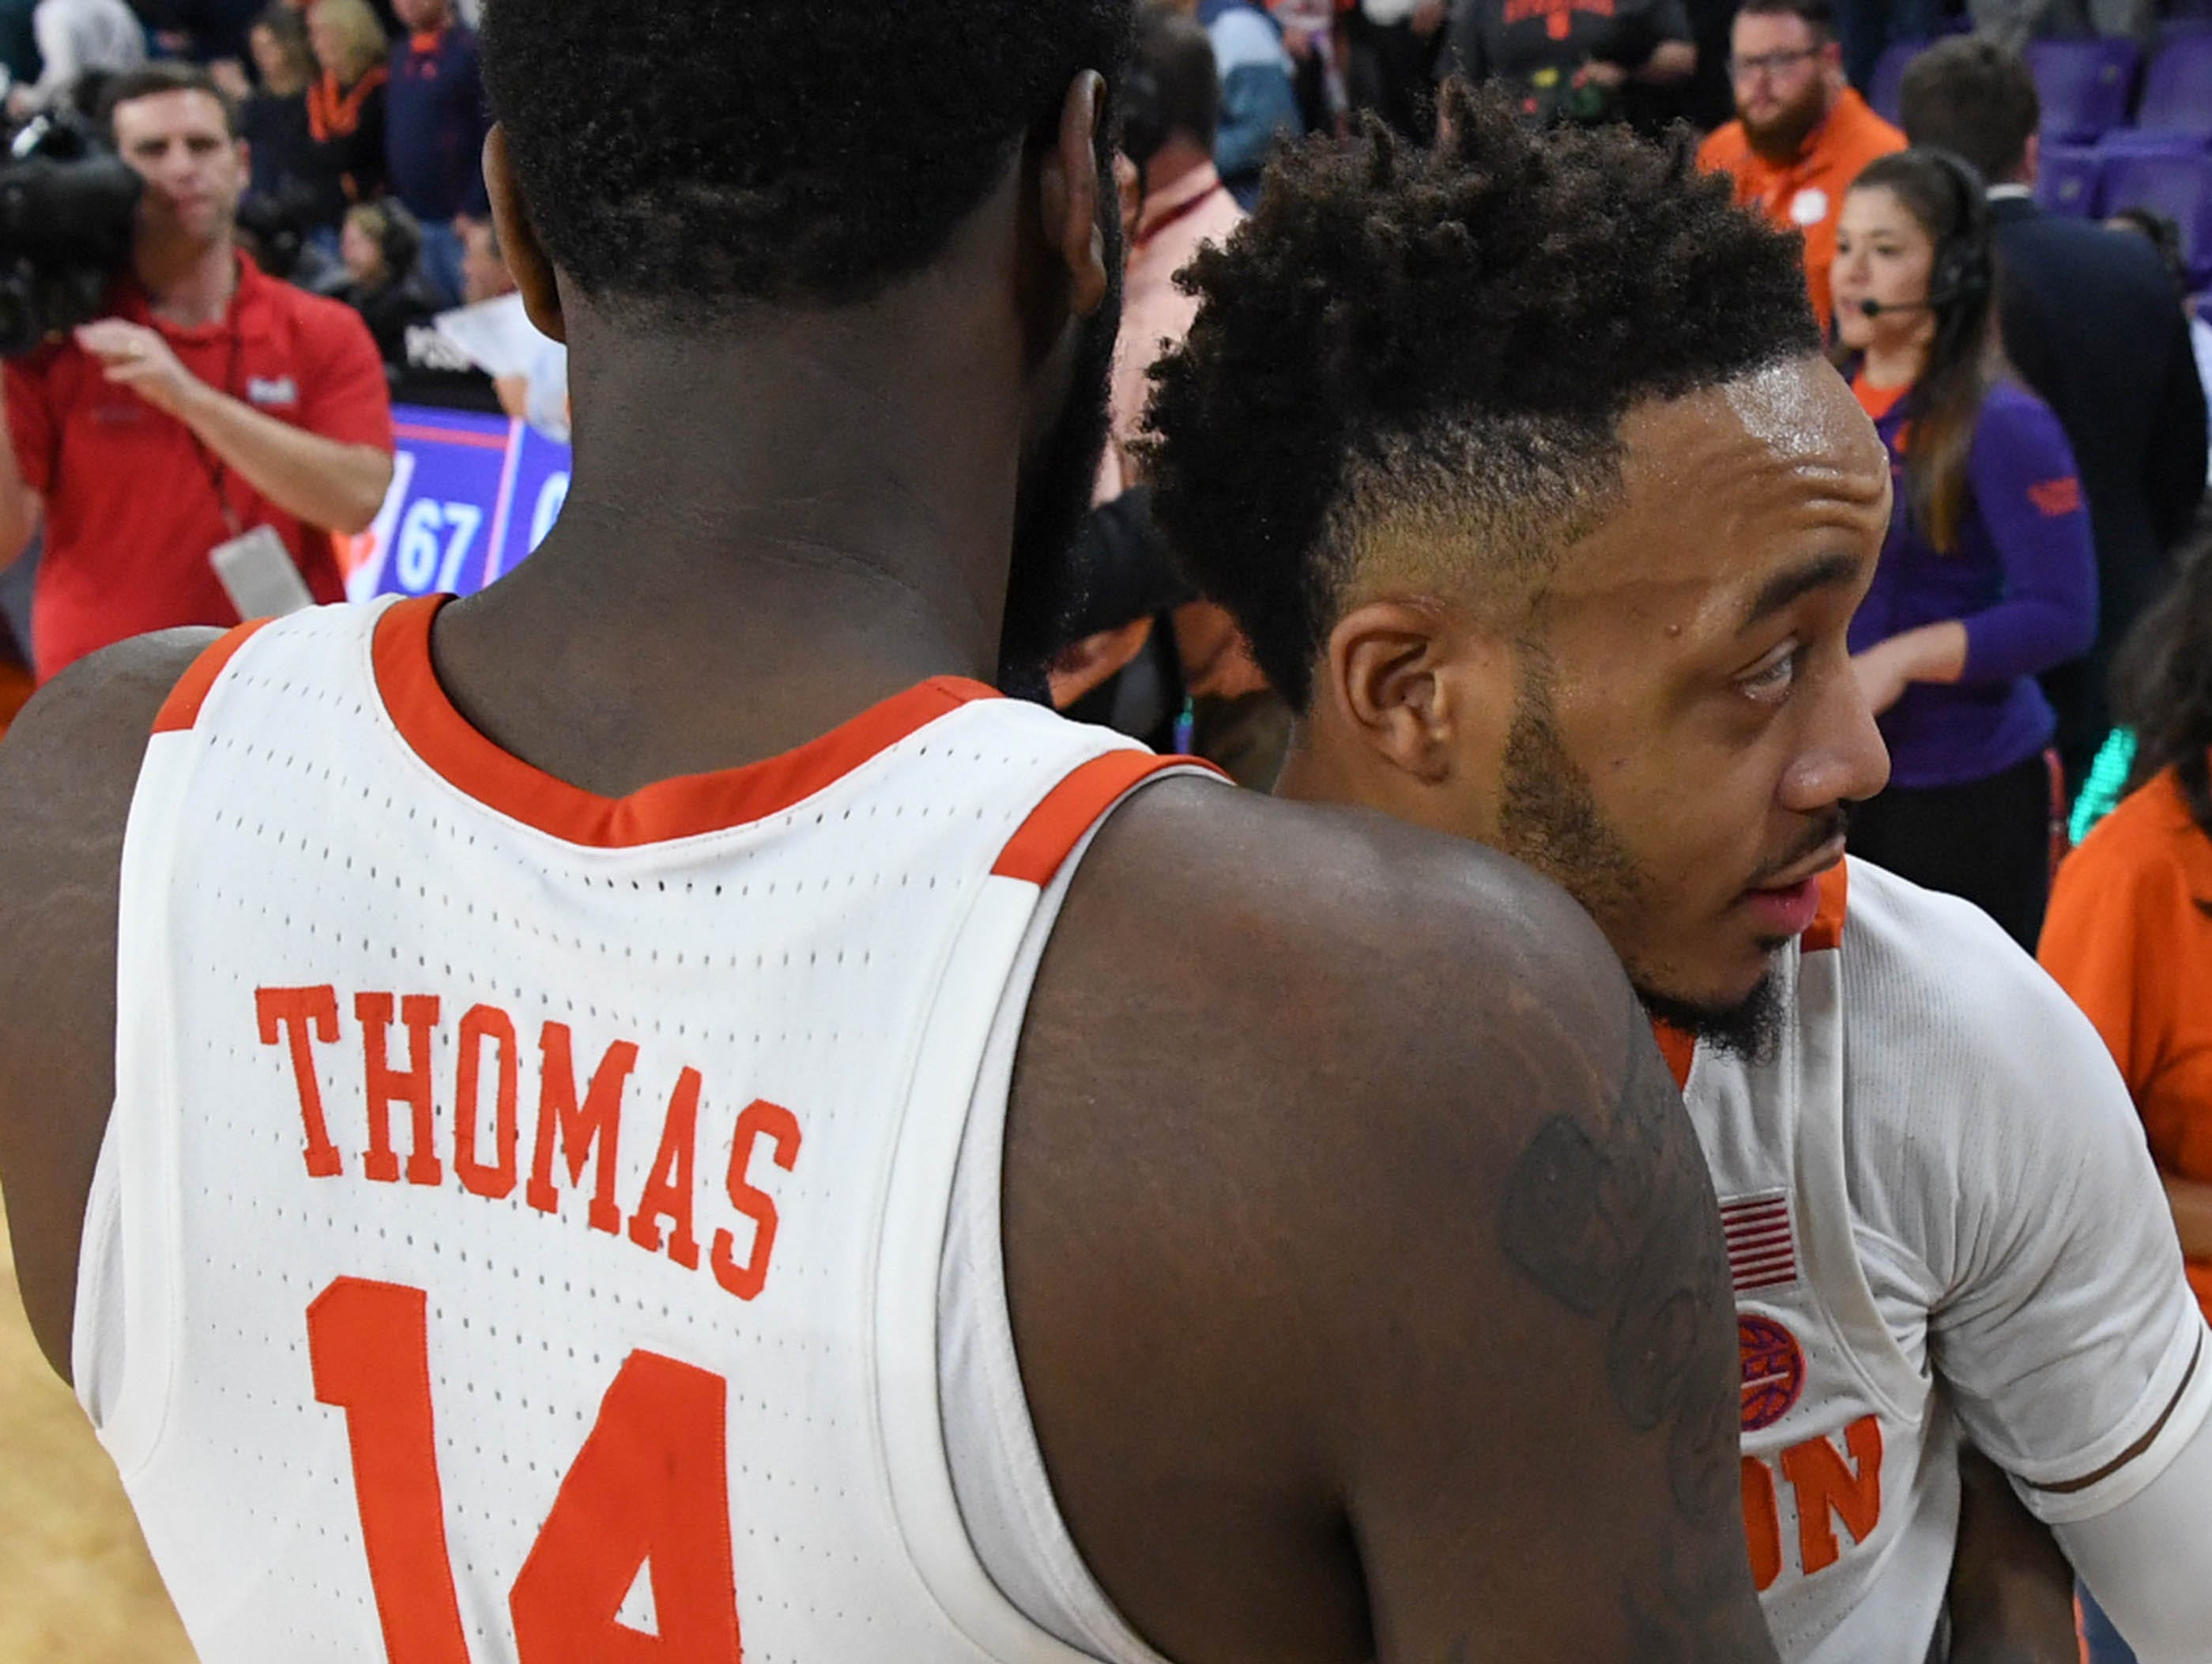 Clemson forward Elijah Thomas (14) and Clemson guard Marcquise Reed (2) after a 67-55 win over Syracuse in Littlejohn Coliseum in Clemson Saturday, March 9, 2019.